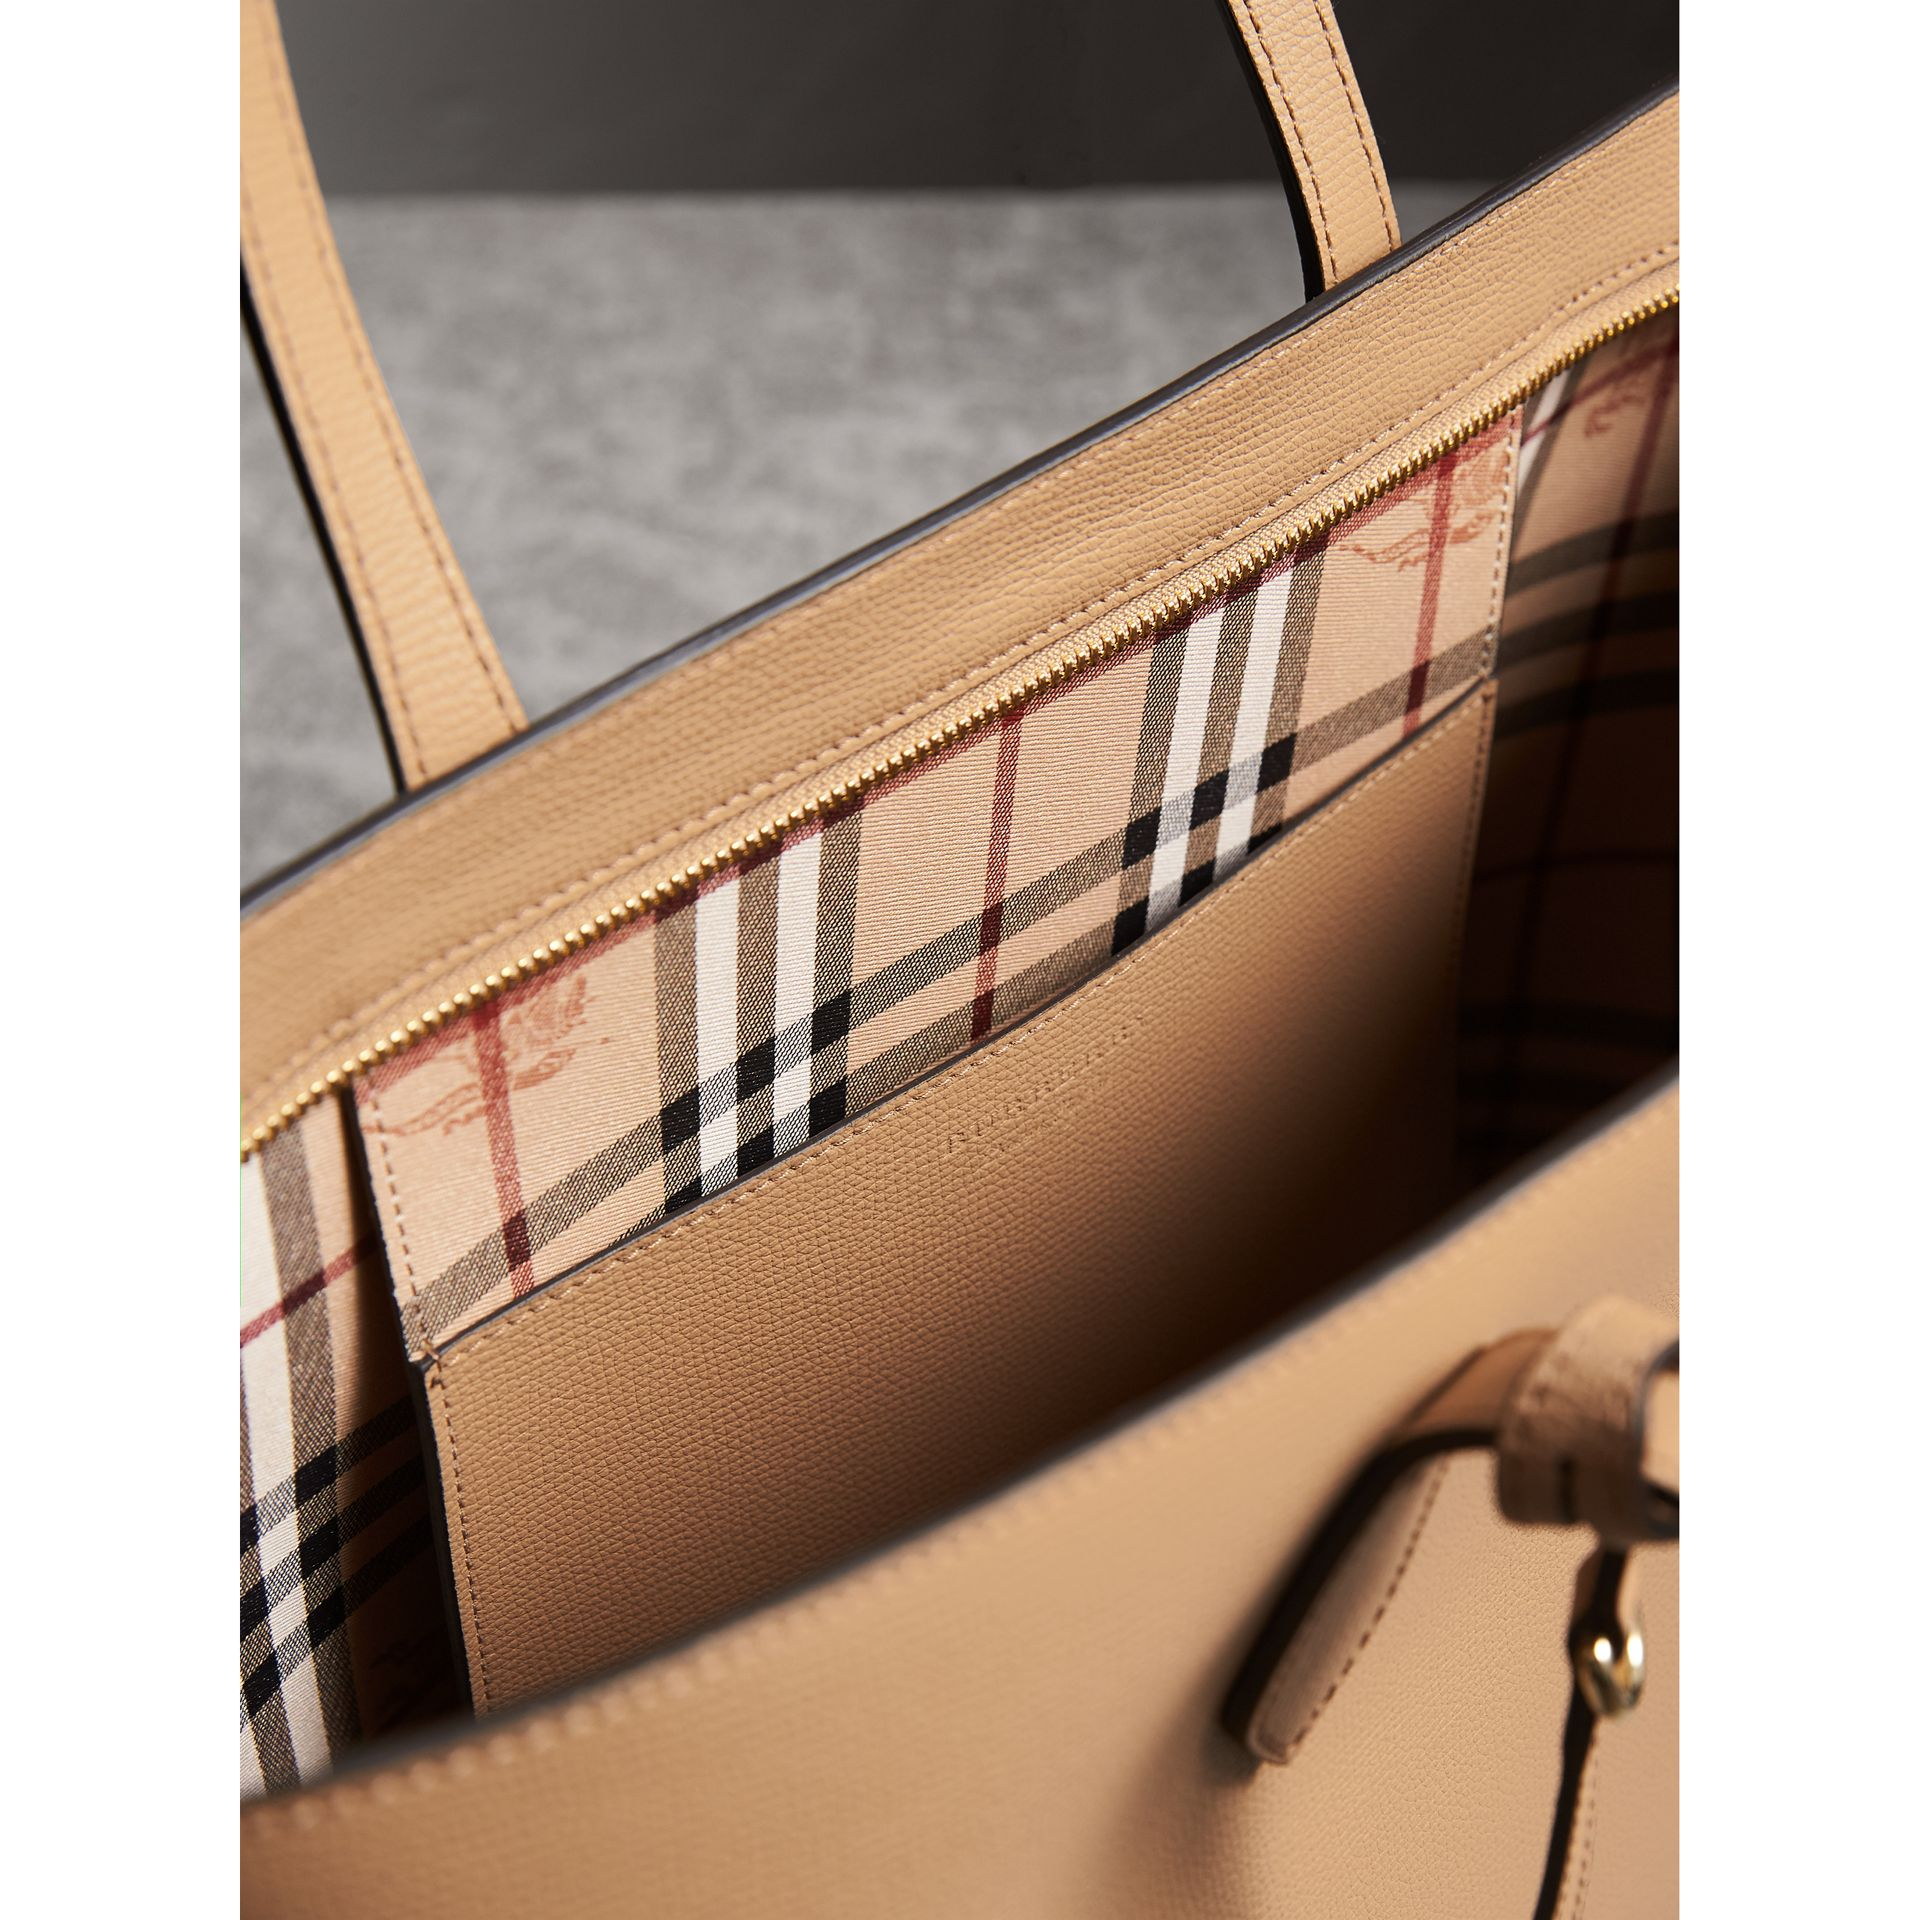 Medium Coated Leather Tote in Mid Camel - Women | Burberry Canada - gallery image 4